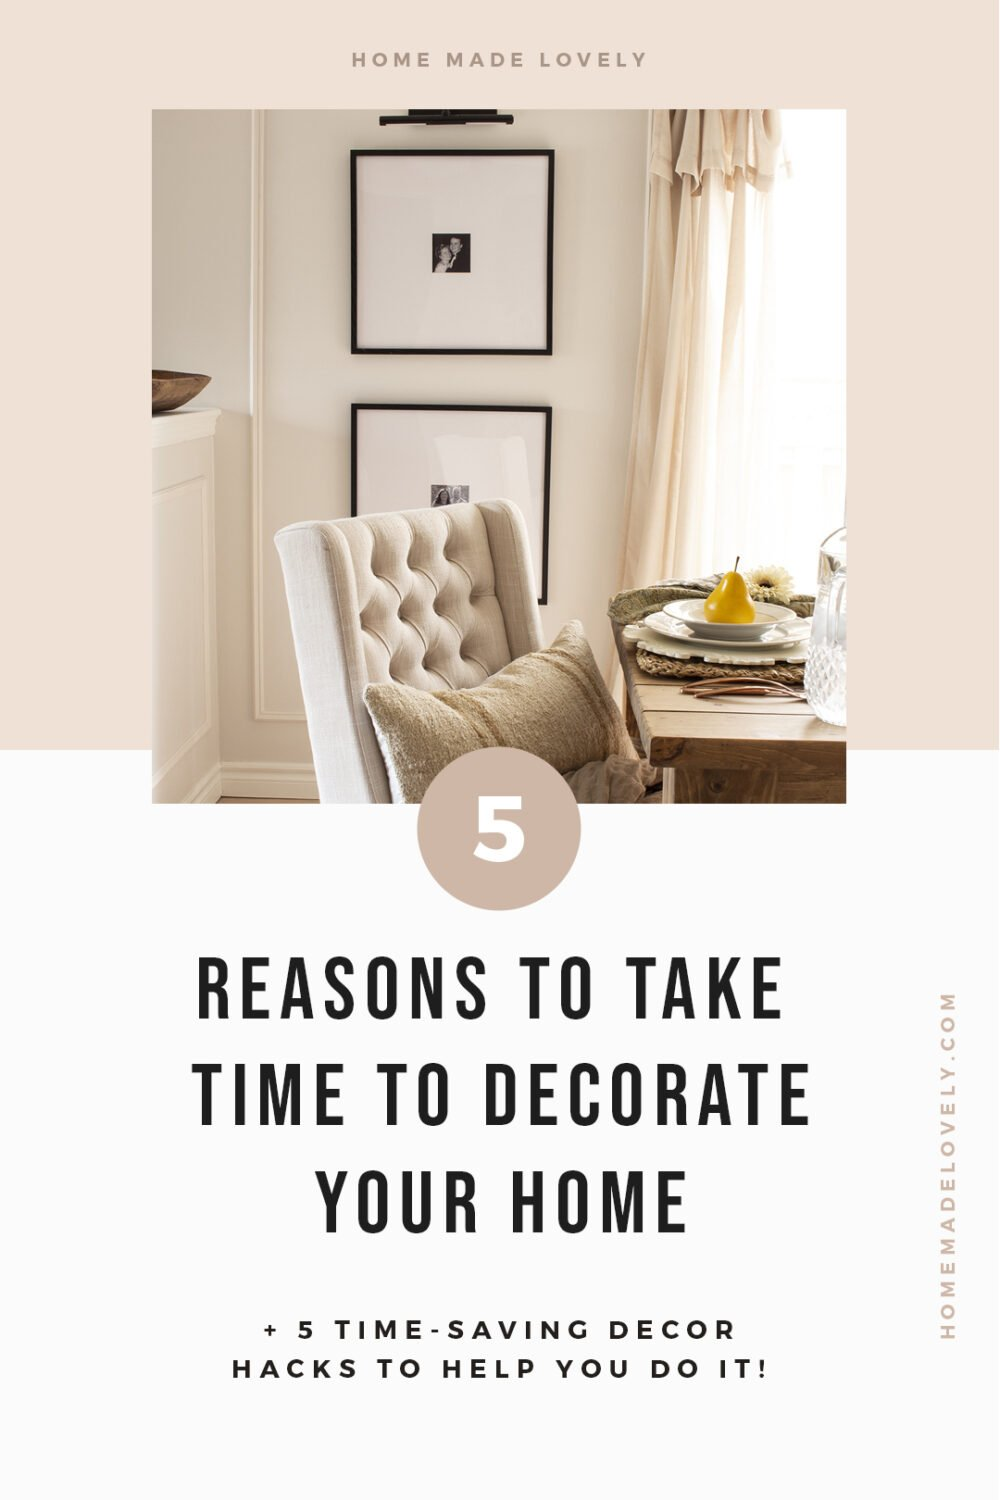 photo of decorating dining room with neutral colors, and 5 Reasons to Take Time To Decorate Your Home text overlay